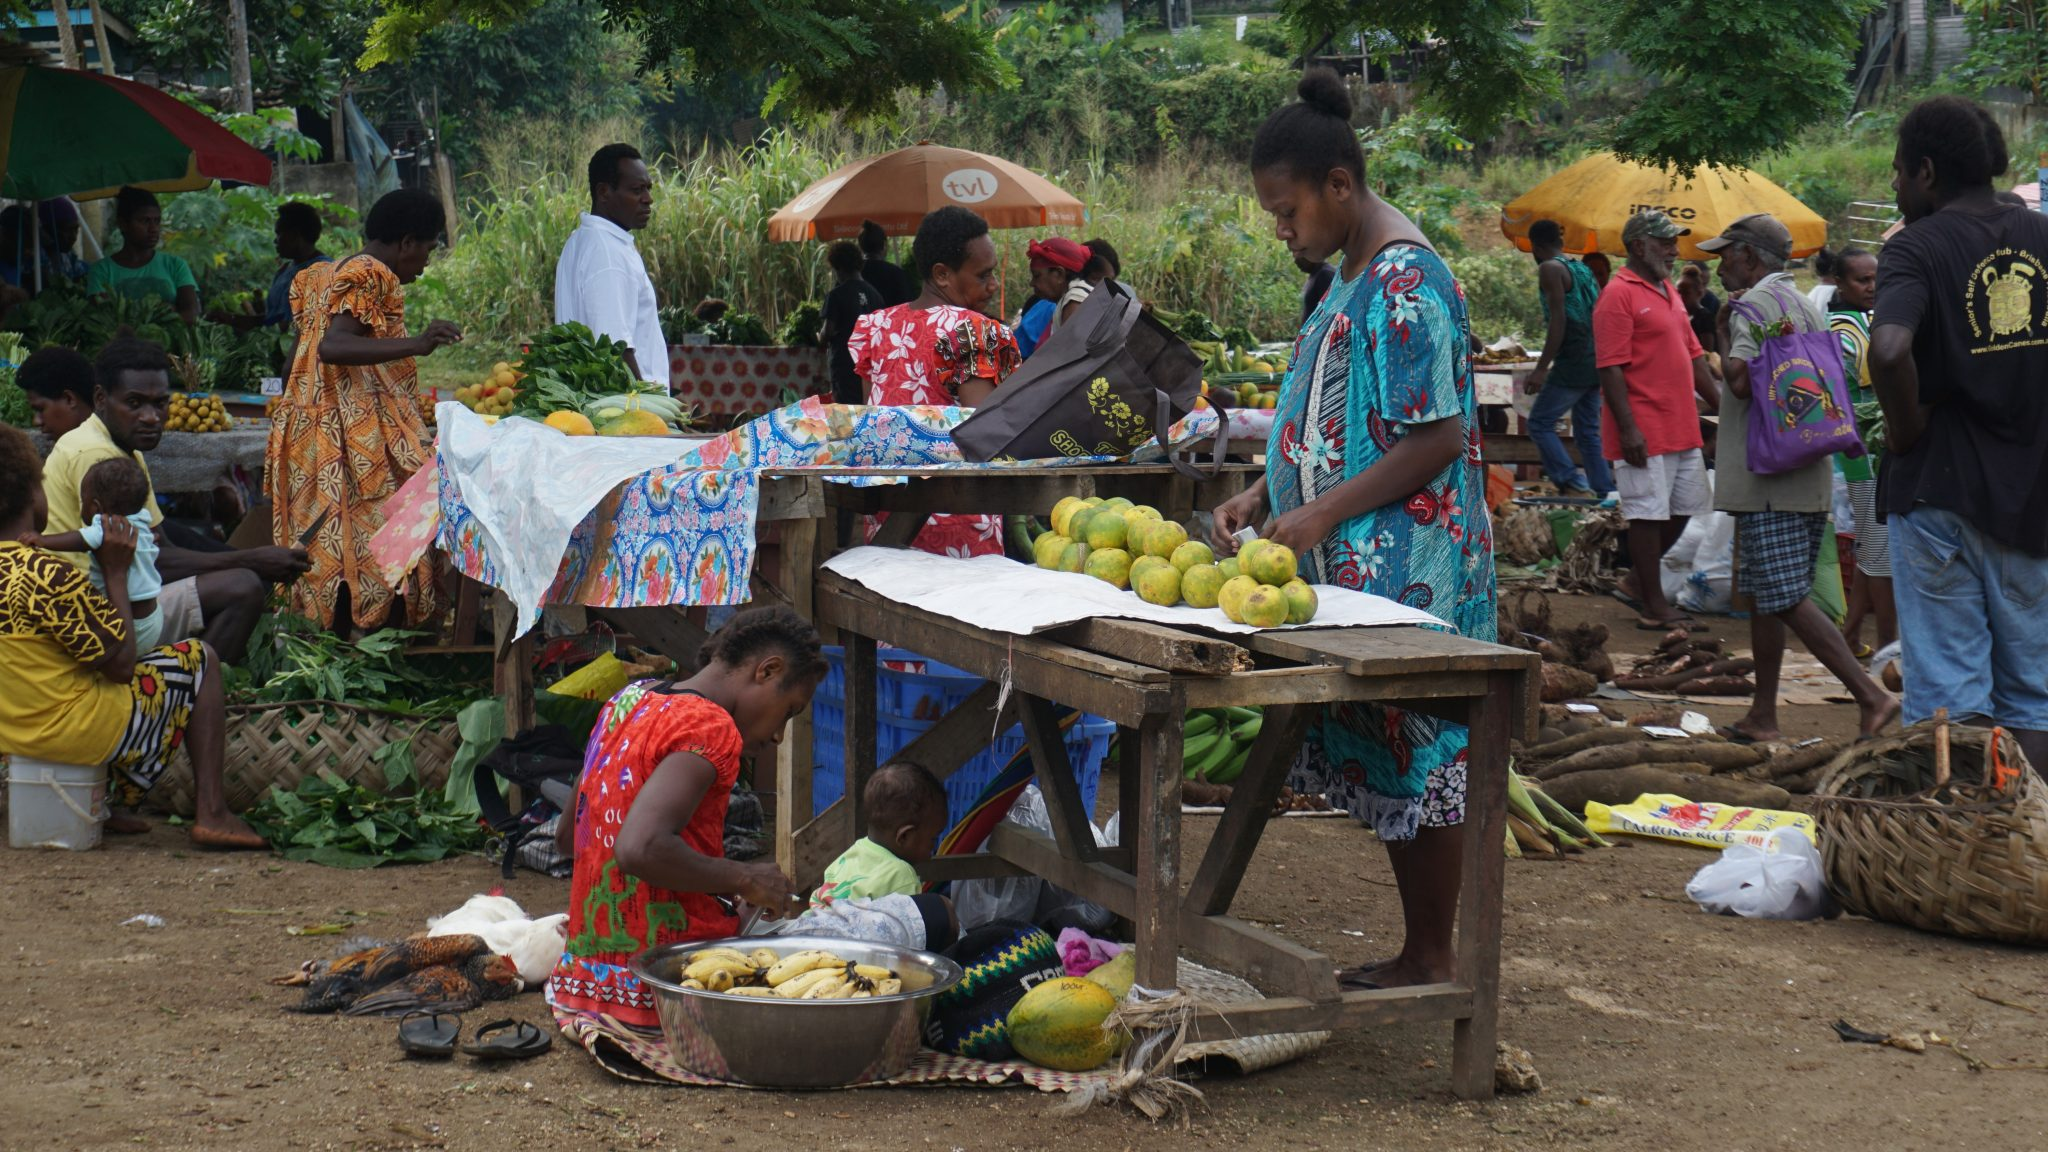 local market stall - Public Health & Nutrition Review from Vanuatu